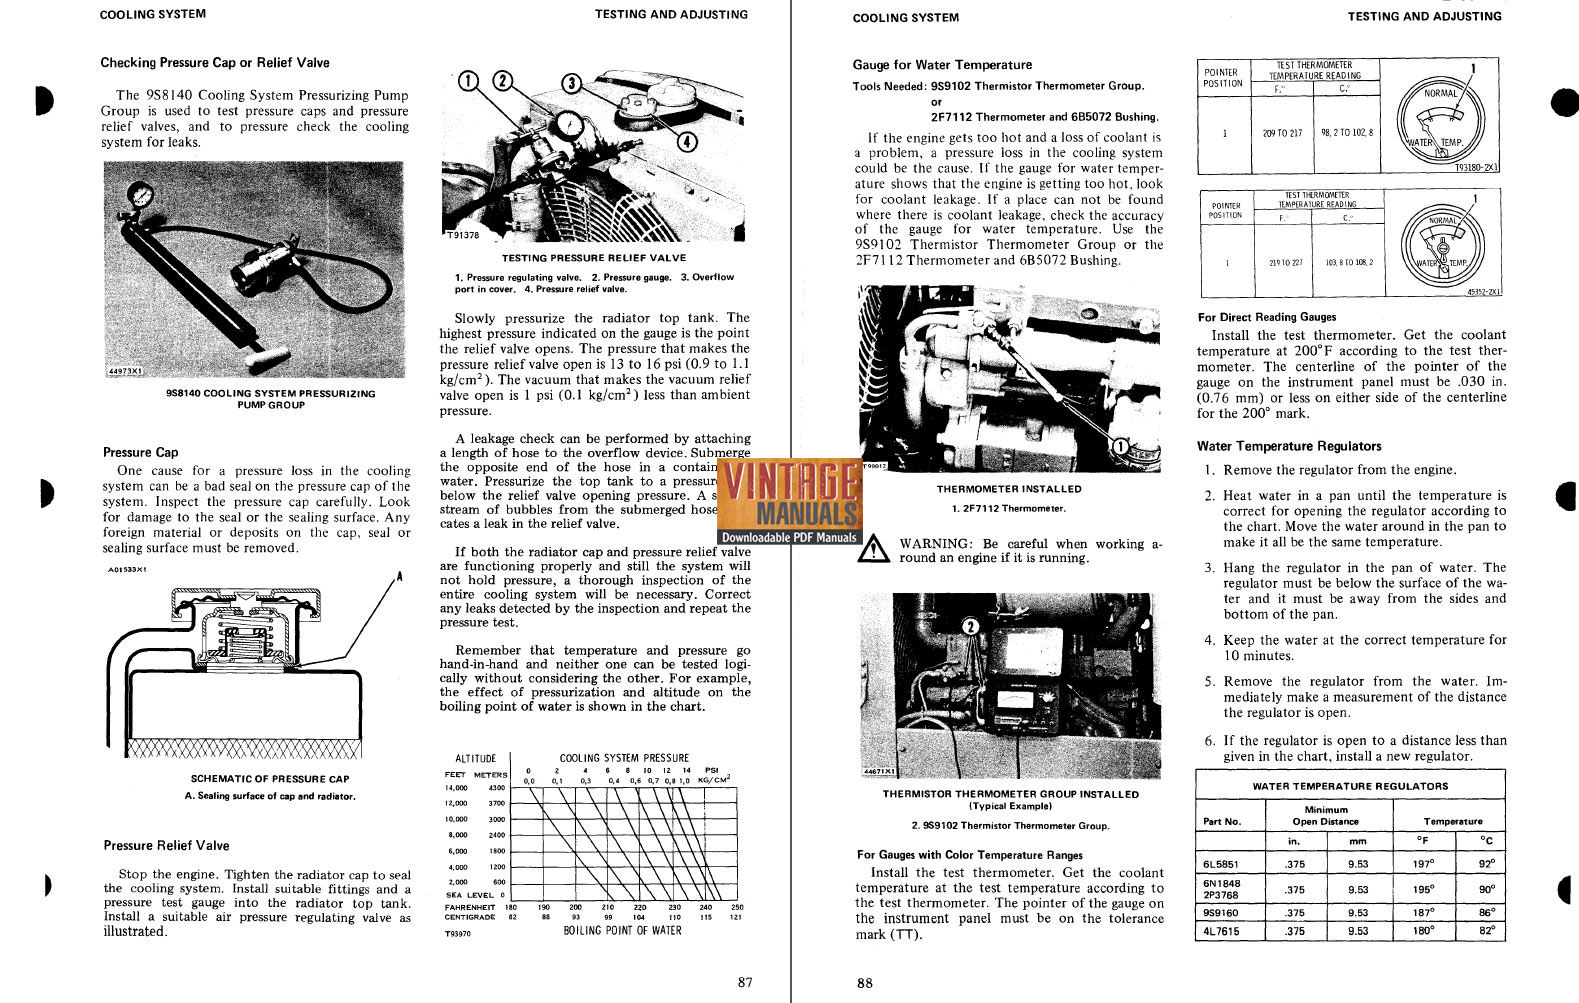 3406e jake brake wiring diagram for a two way switched light in australia cat 3406 generator and